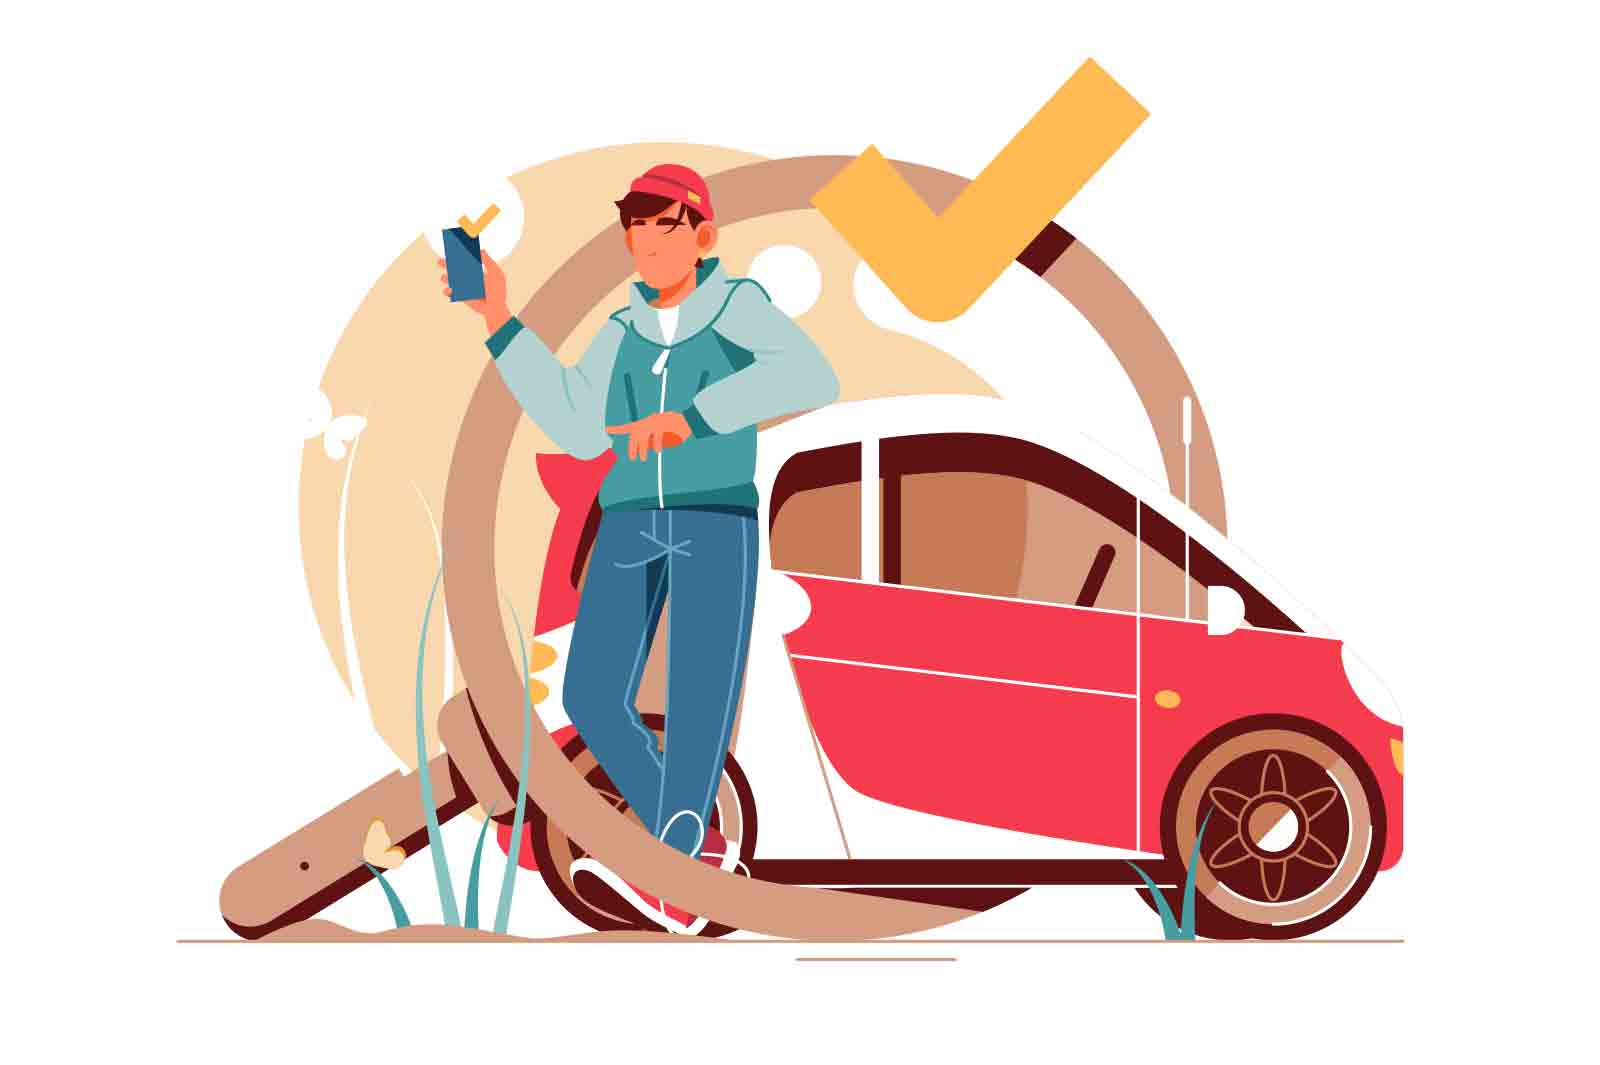 Buying car search with smartphone. Lottie, After Effects animation. Man with phone looking for a car to buy.